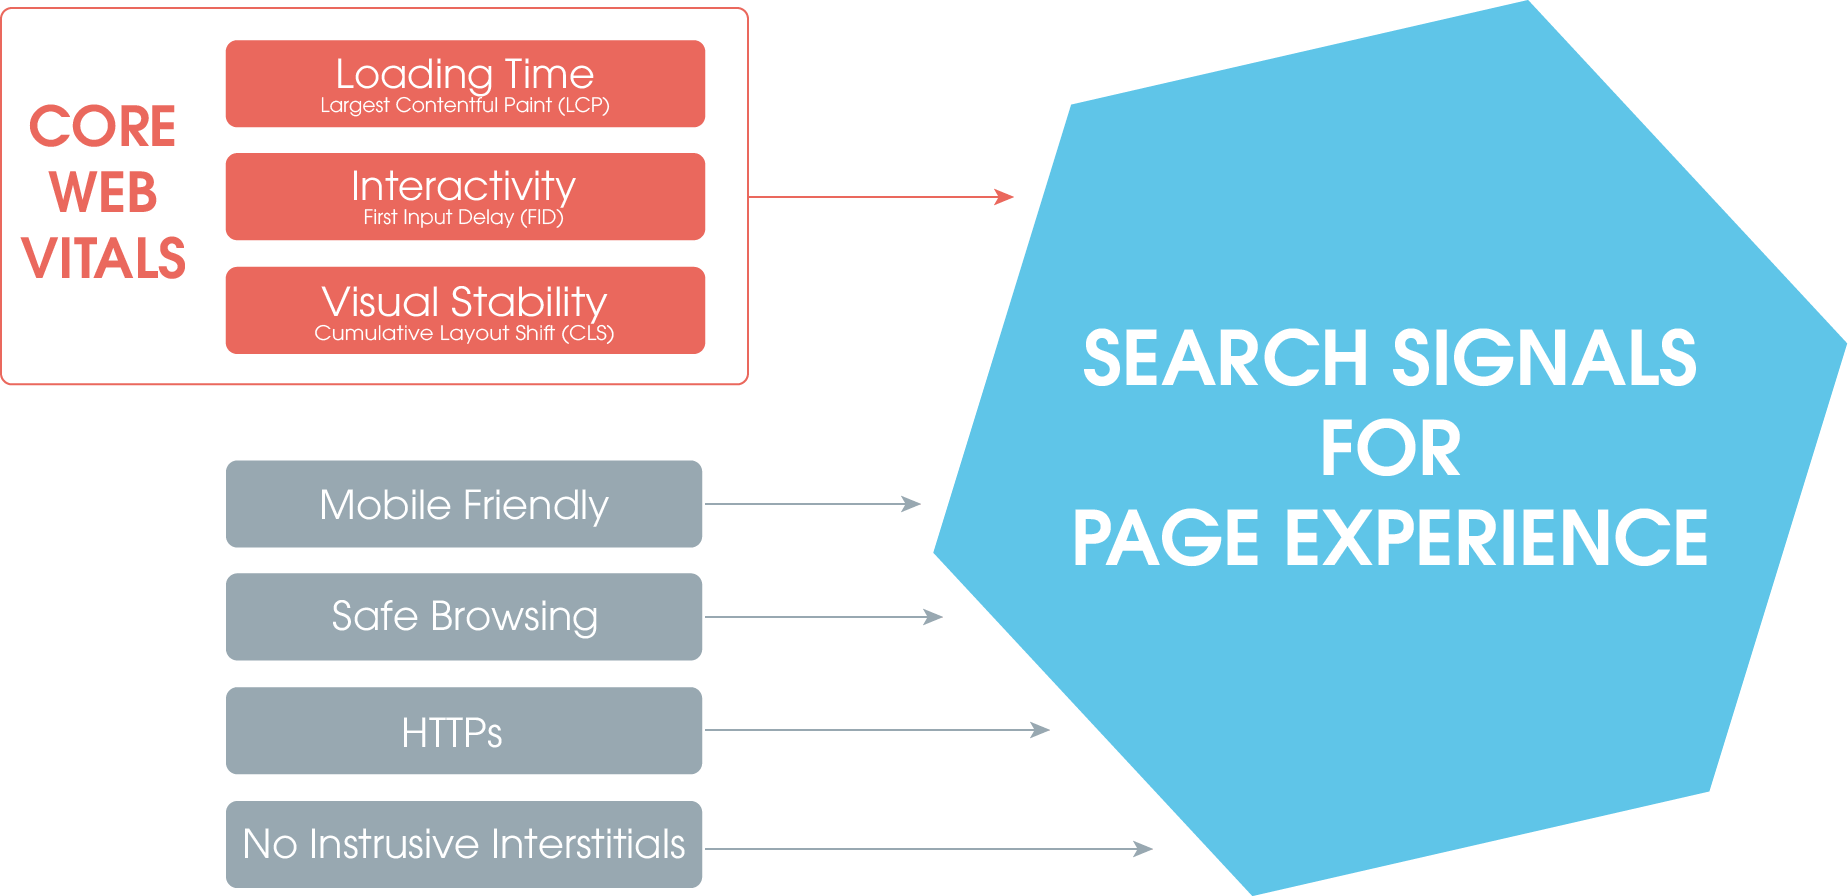 On the image you can see a blue honeycomb, which represents the sum of the search signals of the Page Experience ranking factor. Various aspects are included in this factor: Mobile Friendly, Safe Browsing, HTTPs and no instrusive interstitials are already existing metrics. New are the Core Web Vitals (marked red here), which consist of LCP, FID and CLS and replace PageSpeed.